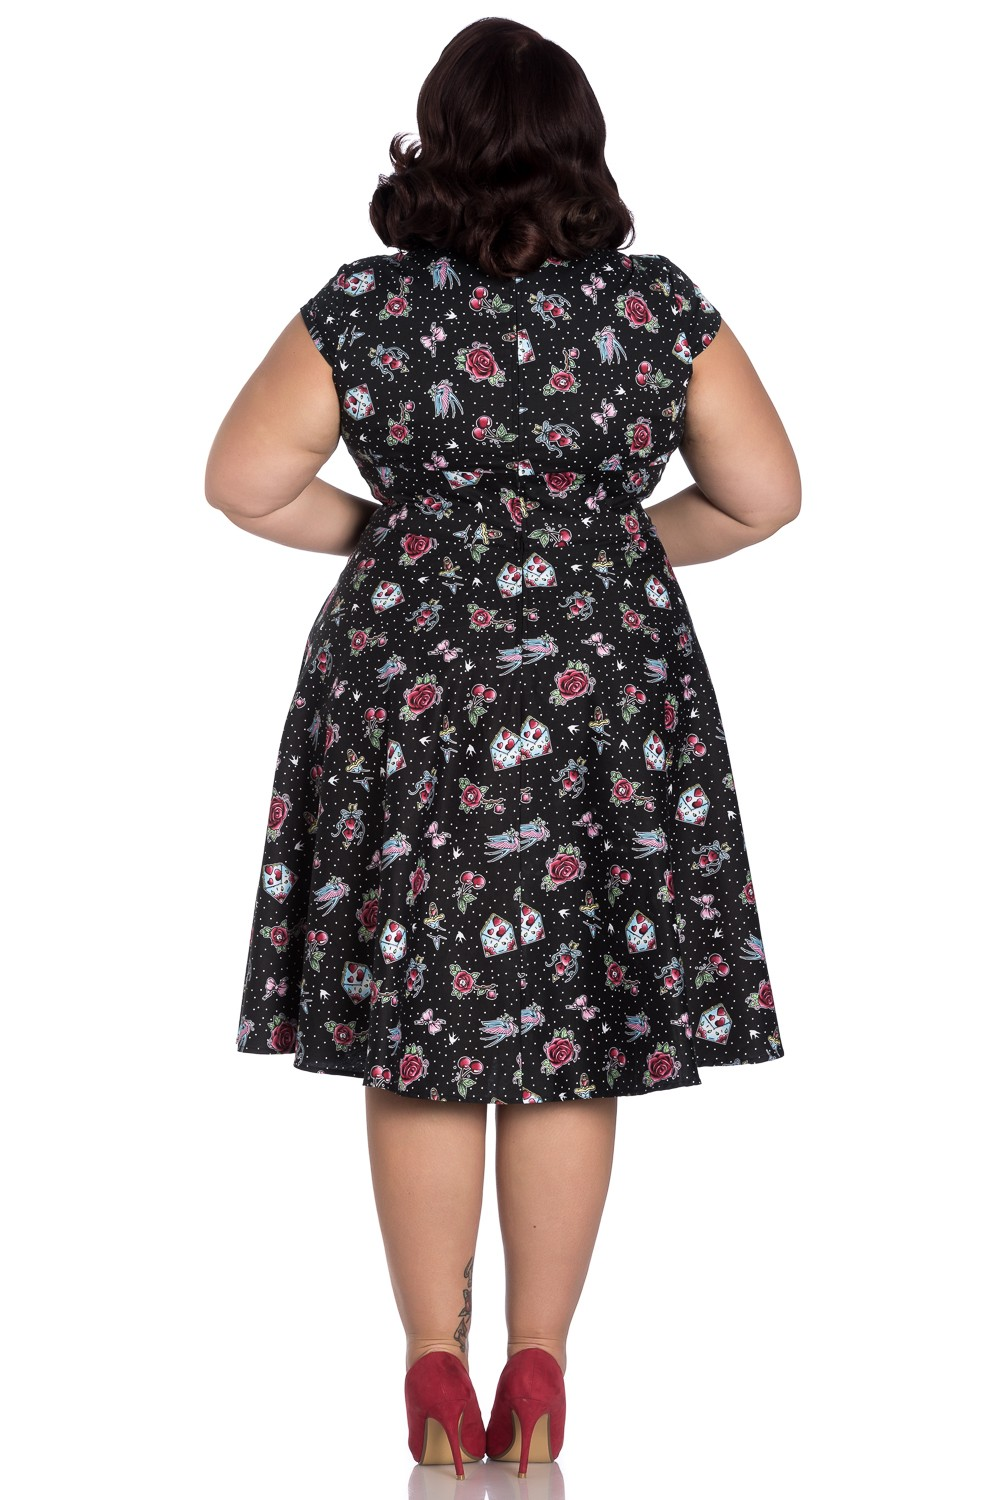 Collectif Clothing 50s Violet Floral Cherry Dress in Pink